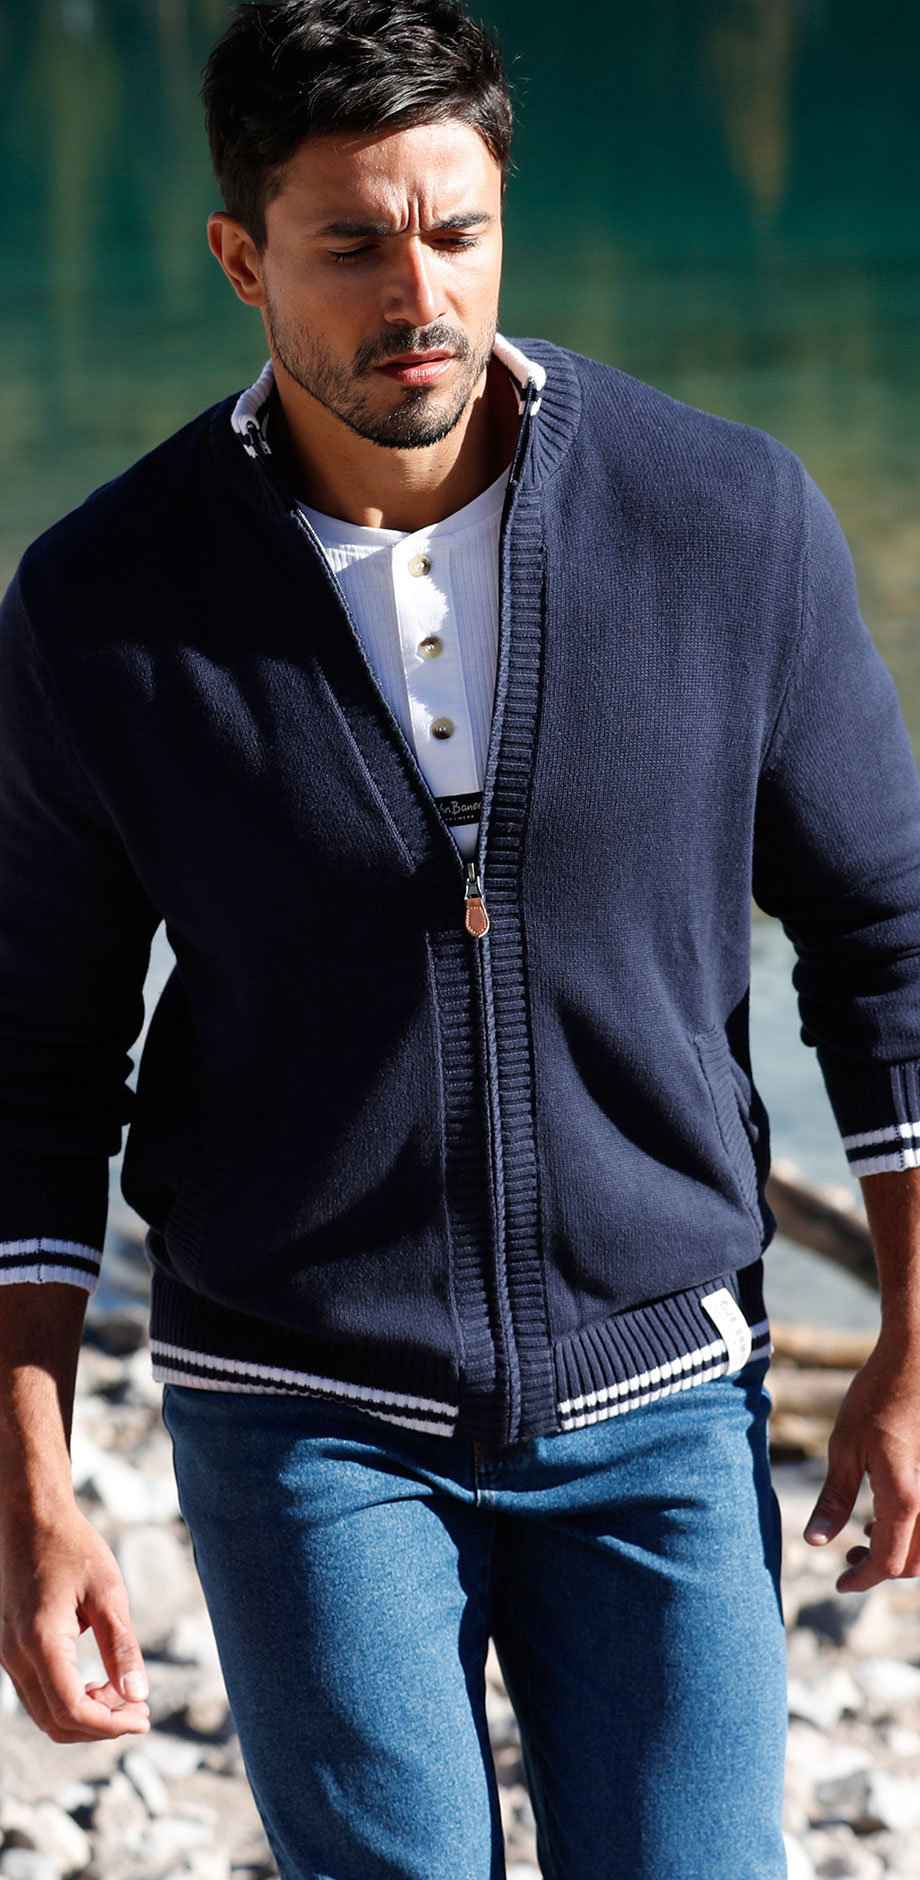 Uomo - Cardigan regular fit - Blu scuro